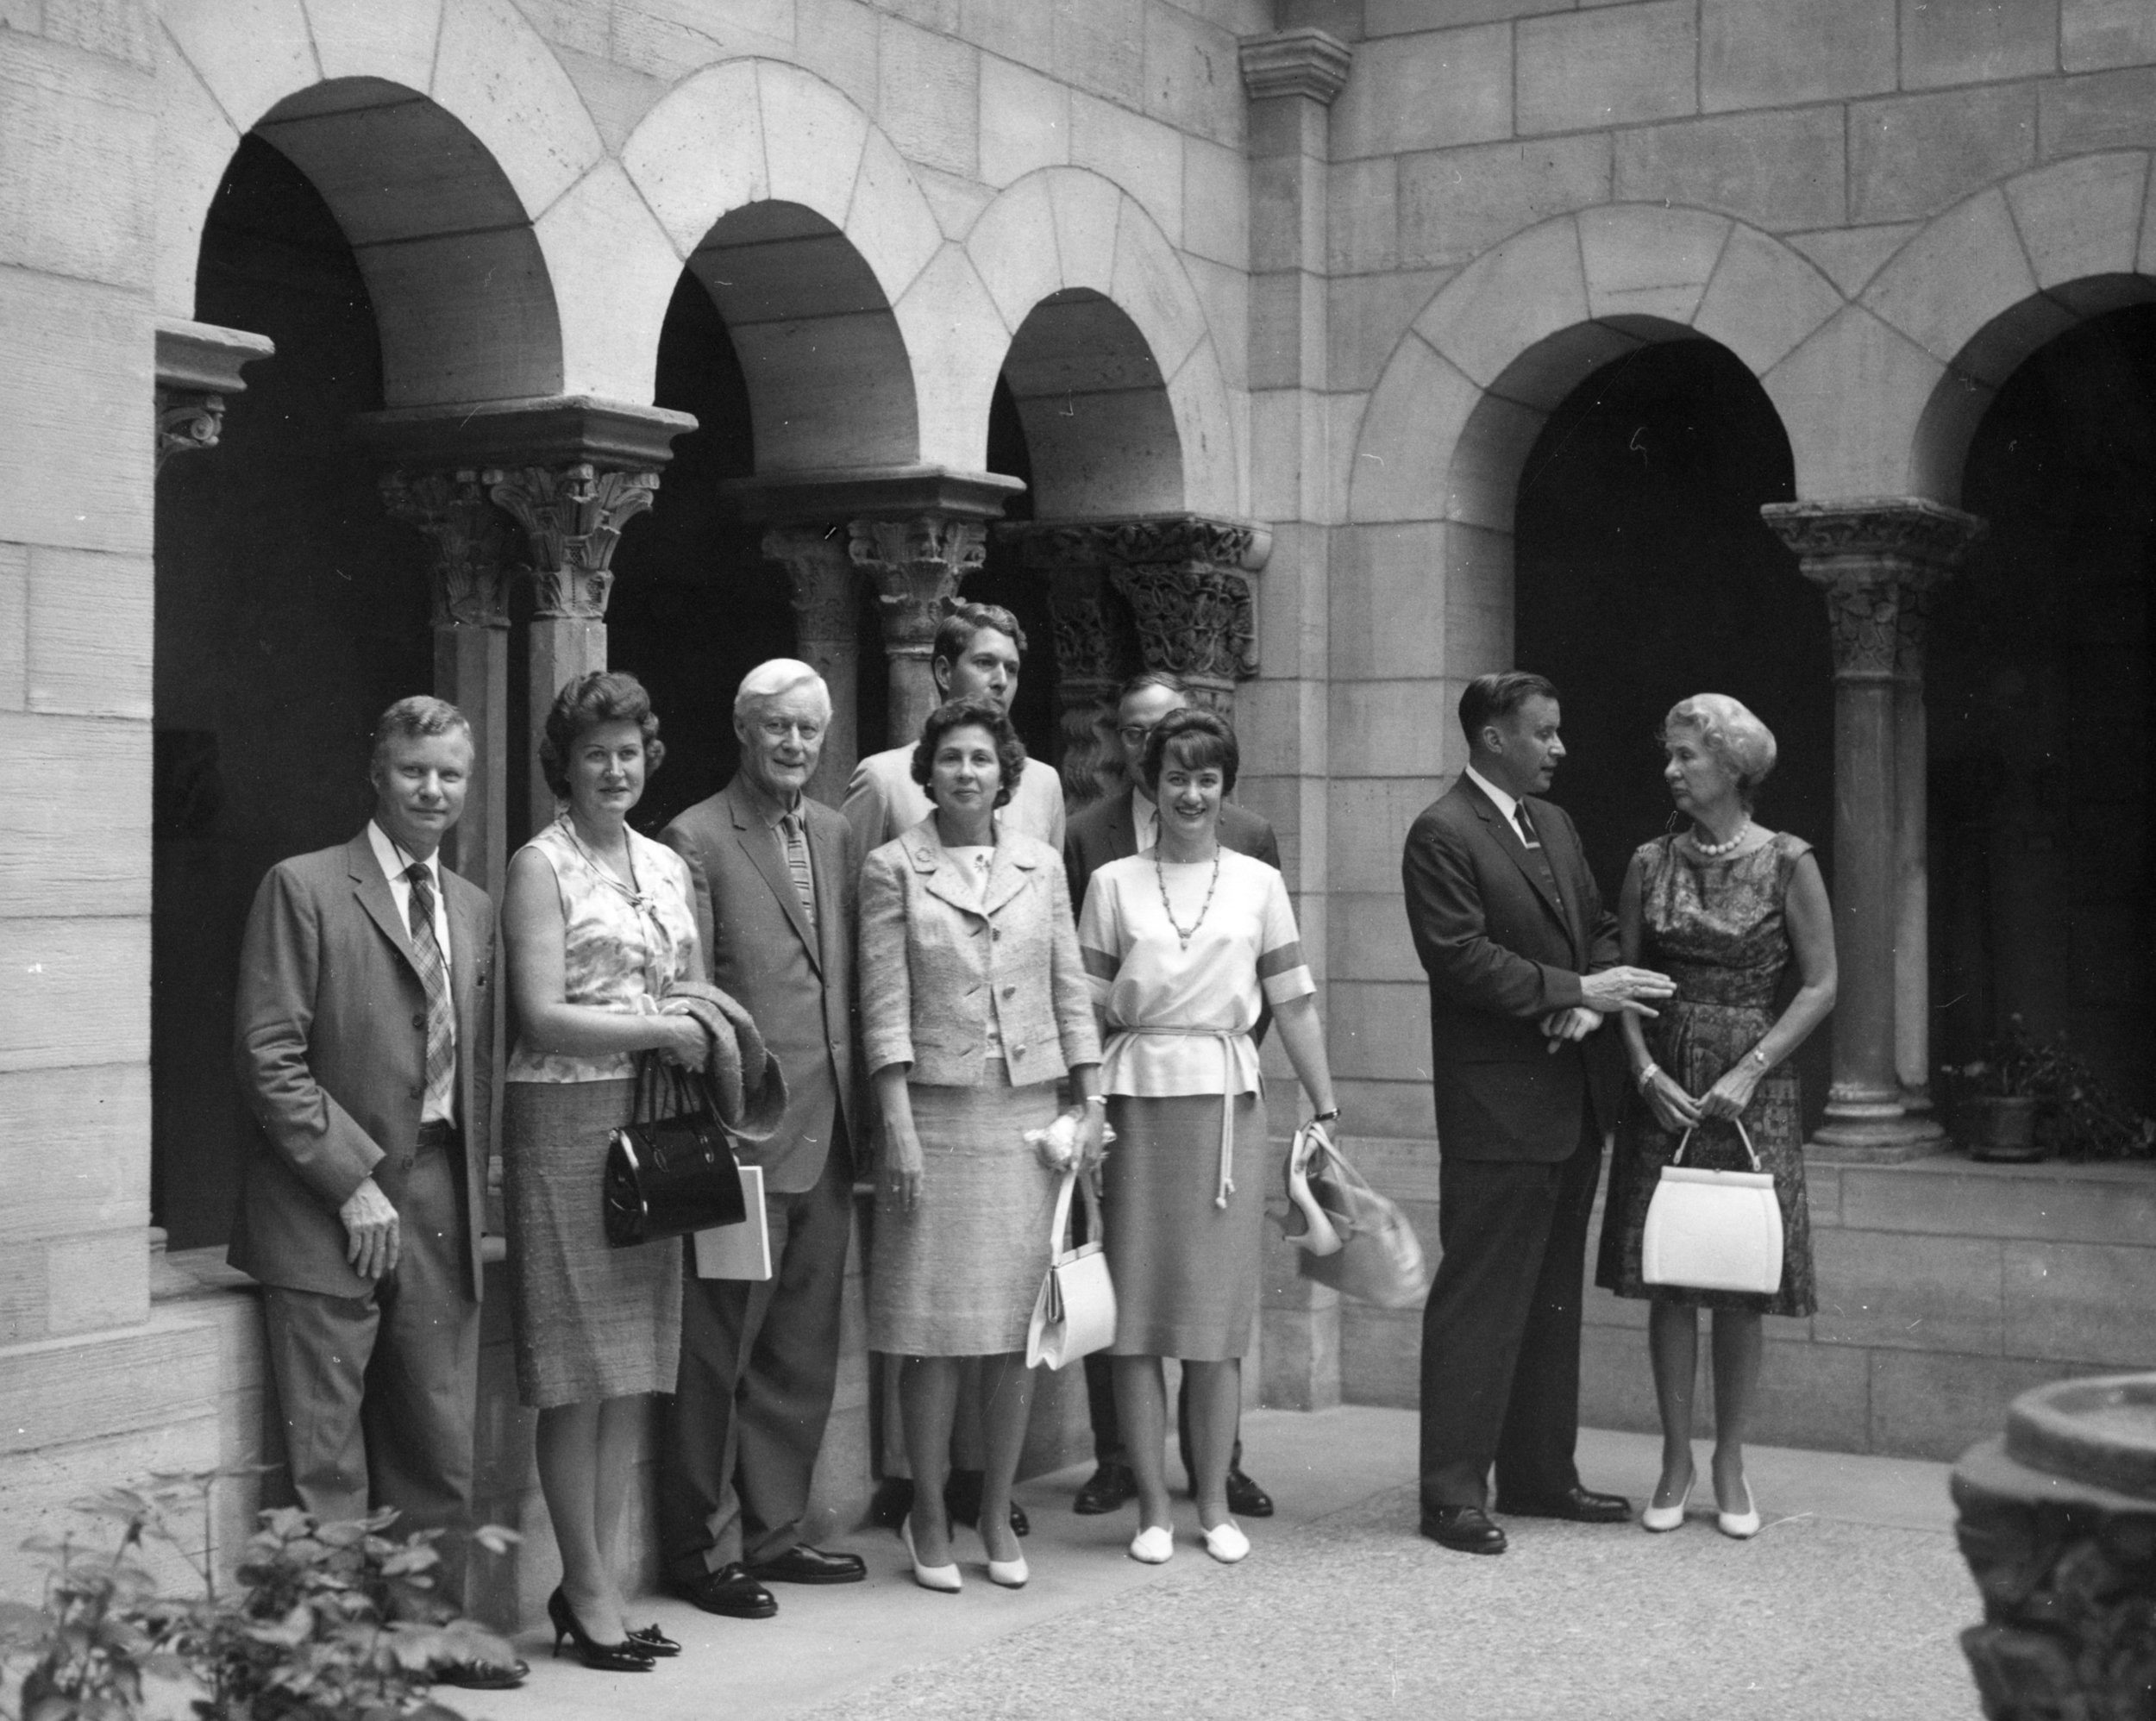 Figure 8: In July of 1965, members of the Raymond and Mildred Pitcairn family visited The Cloisters: (l-r) Michael Pitcairn, Bethel Pitcairn, Raymond Pitcairn, Geneva Crockett Pitcairn, Vera Pitcairn Junge, (directly behind them) Thomas Miller, Bob Junge, Lachlan Pitcairn, Gabriele Pitcairn Pendleton.